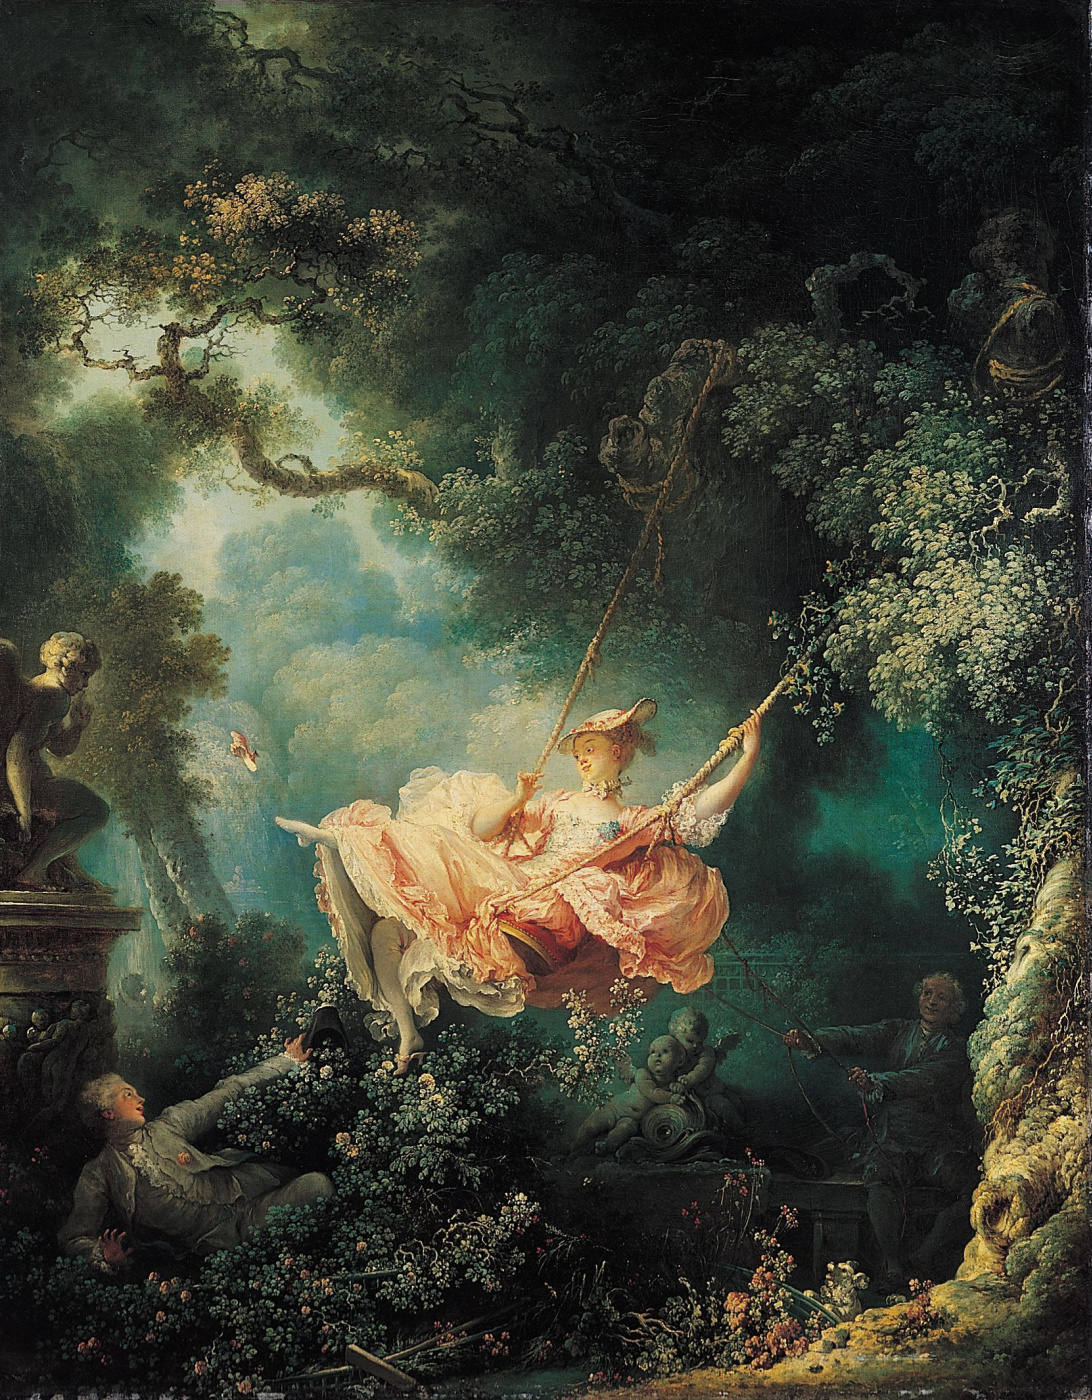 Jean-Honore Fragonard. Swing (Happy swing)